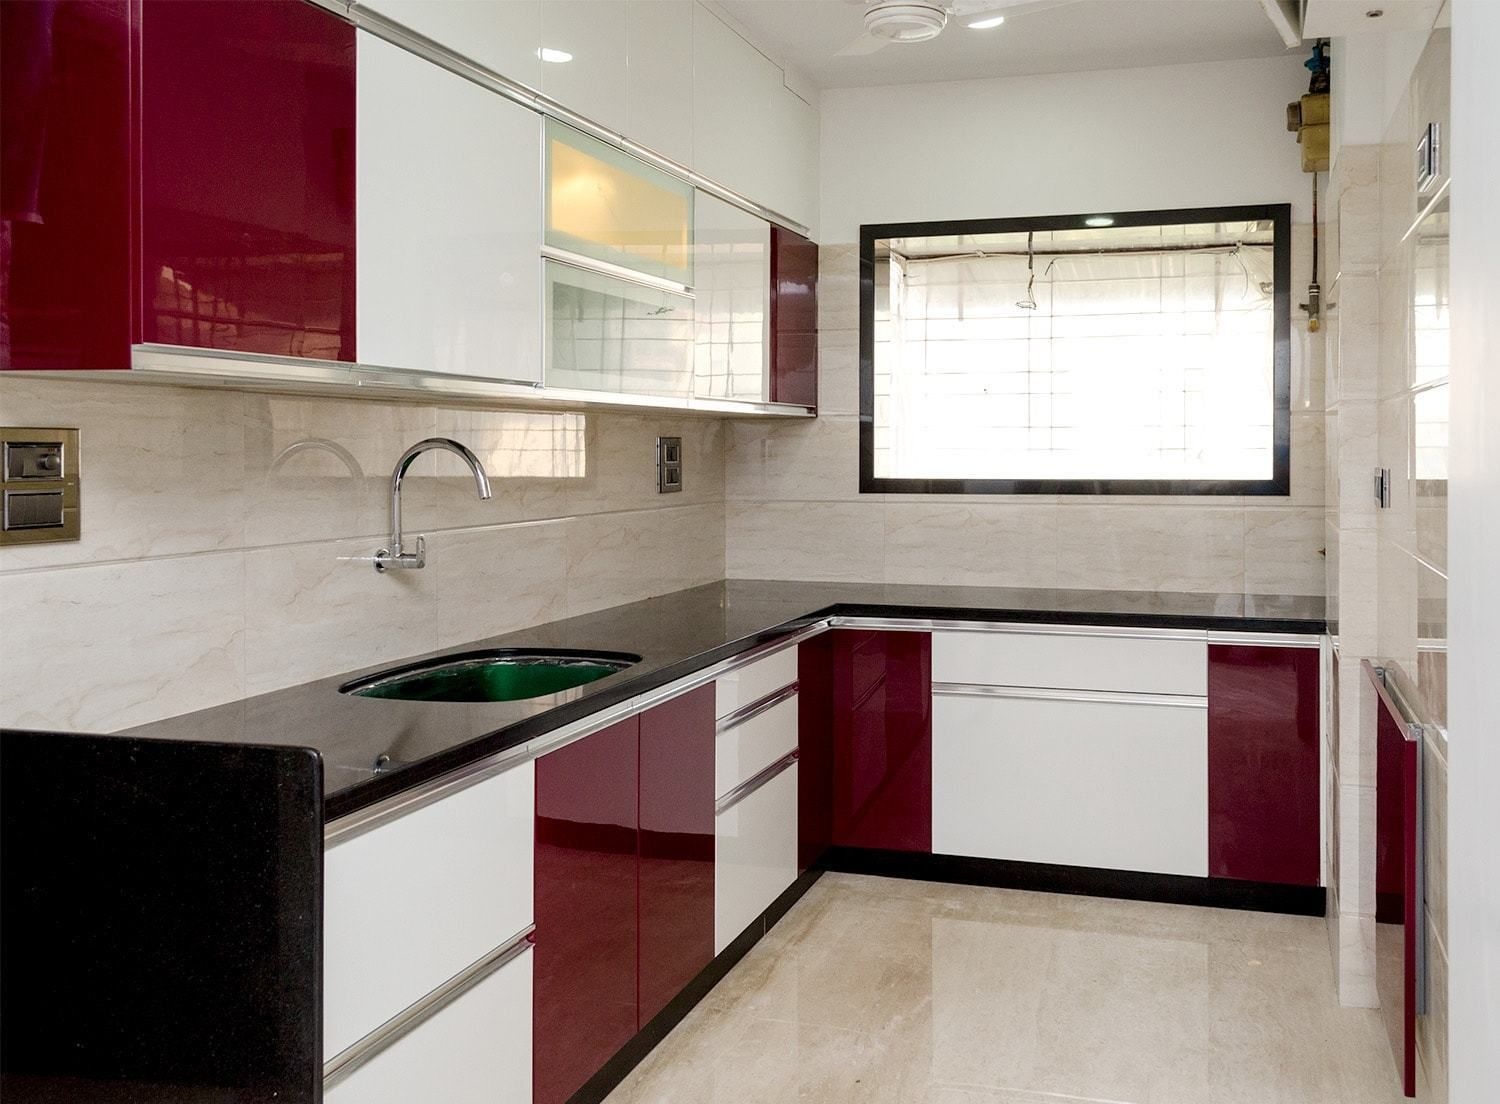 Customized Designs Free Advice From Experts Designs As